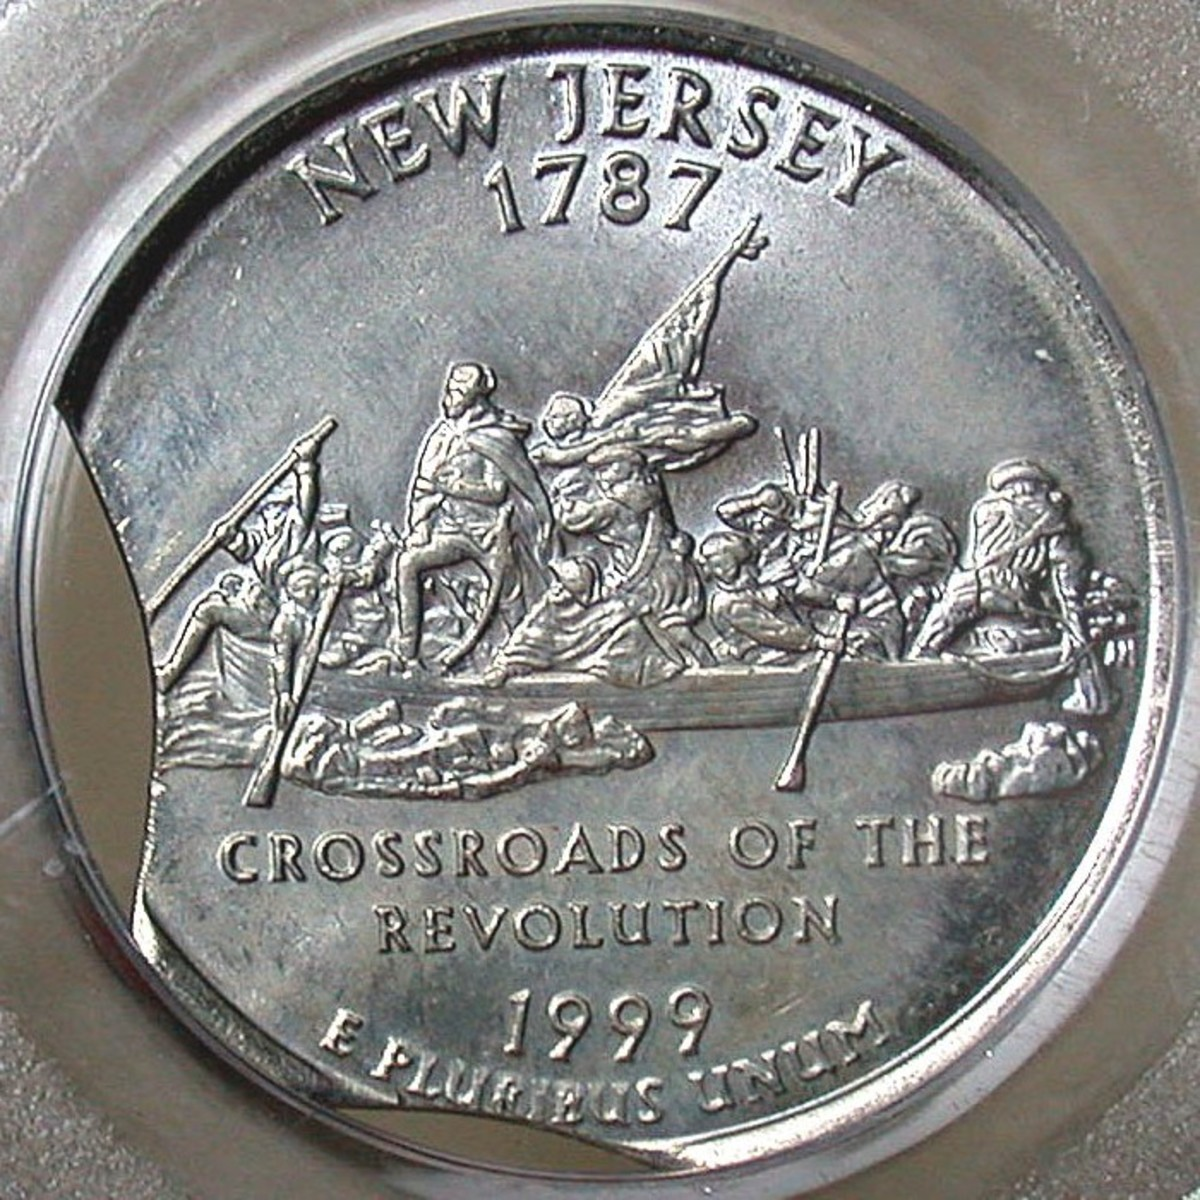 1999 New Jersey Clipped Die Error. Photo Courtesy: coinpage.com